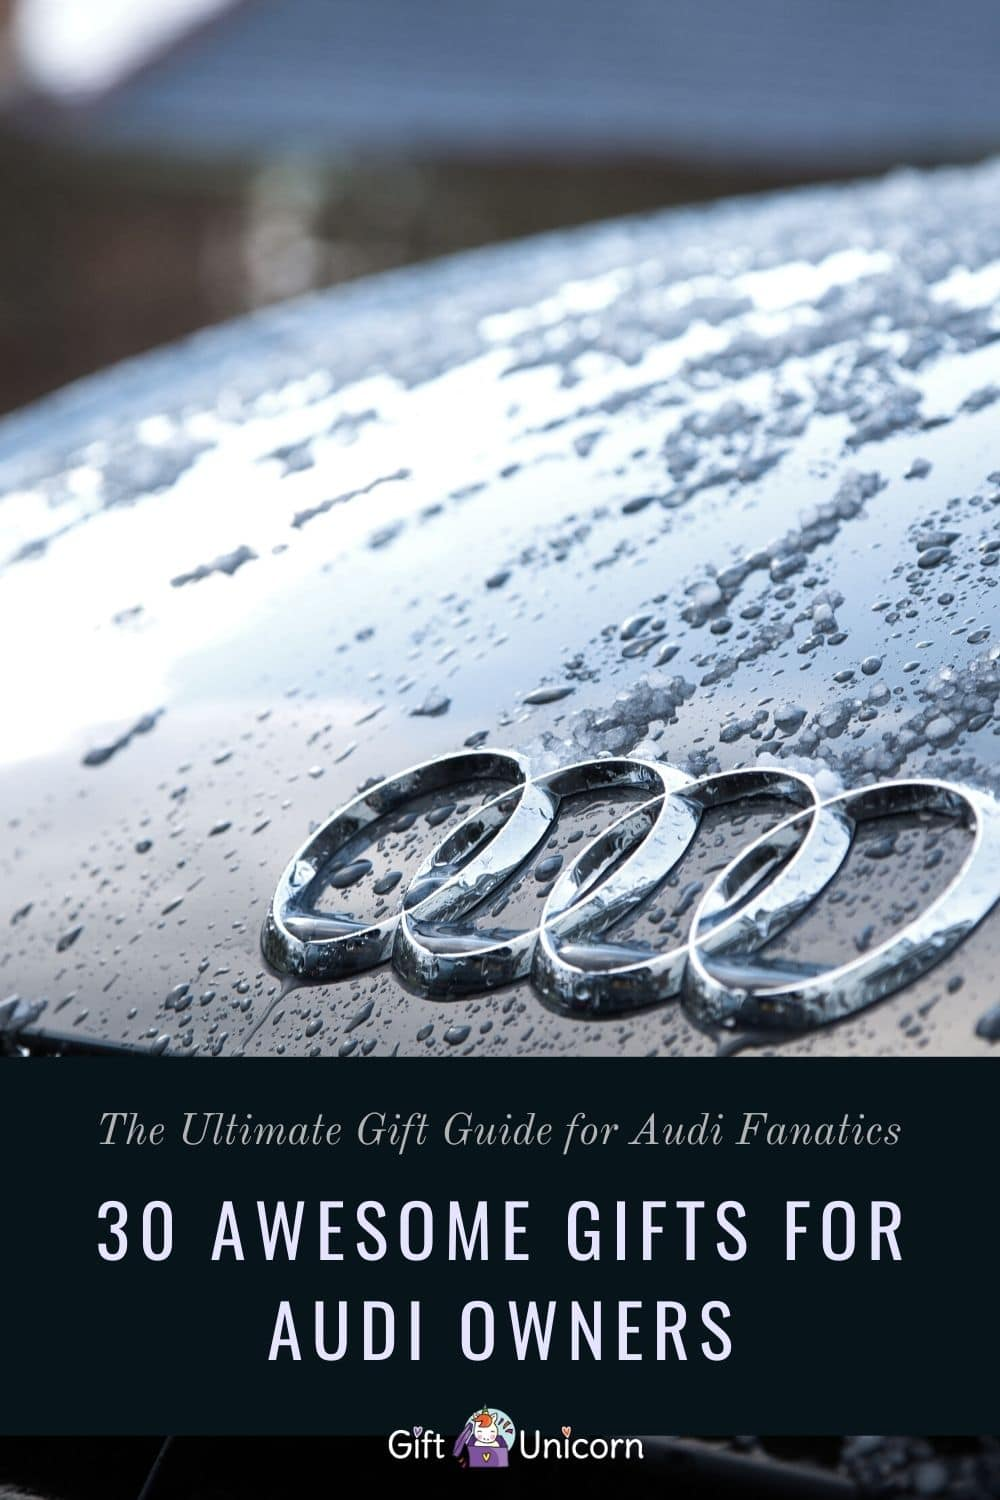 30 Awesome Gifts for Audi Owners They Will Love - pinterest pin image